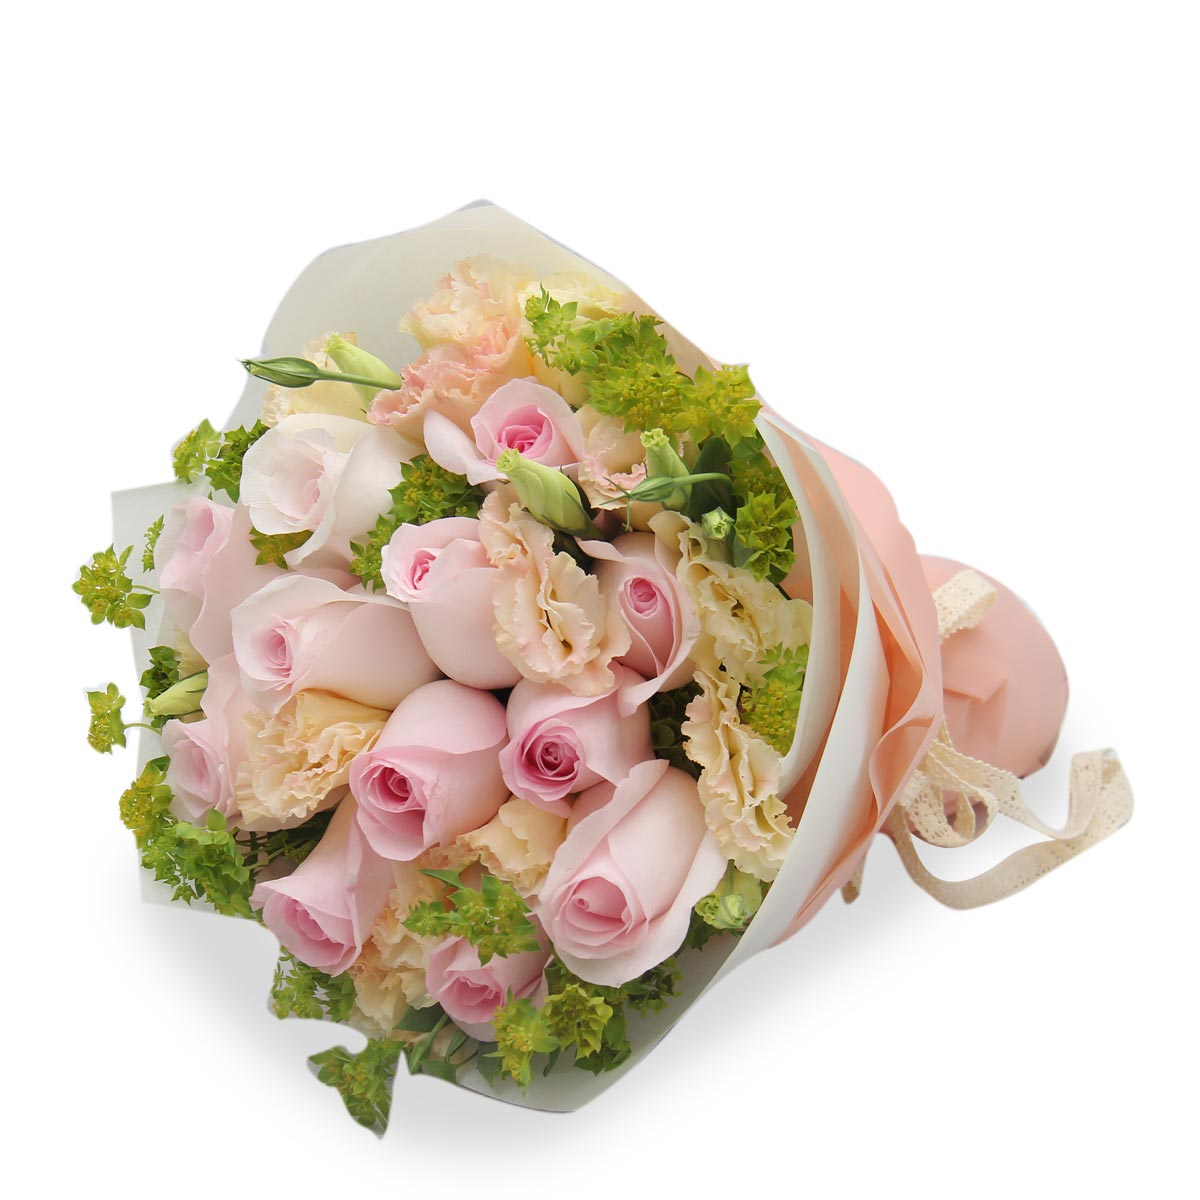 bq1730-the-budding-one-light-pink-roses